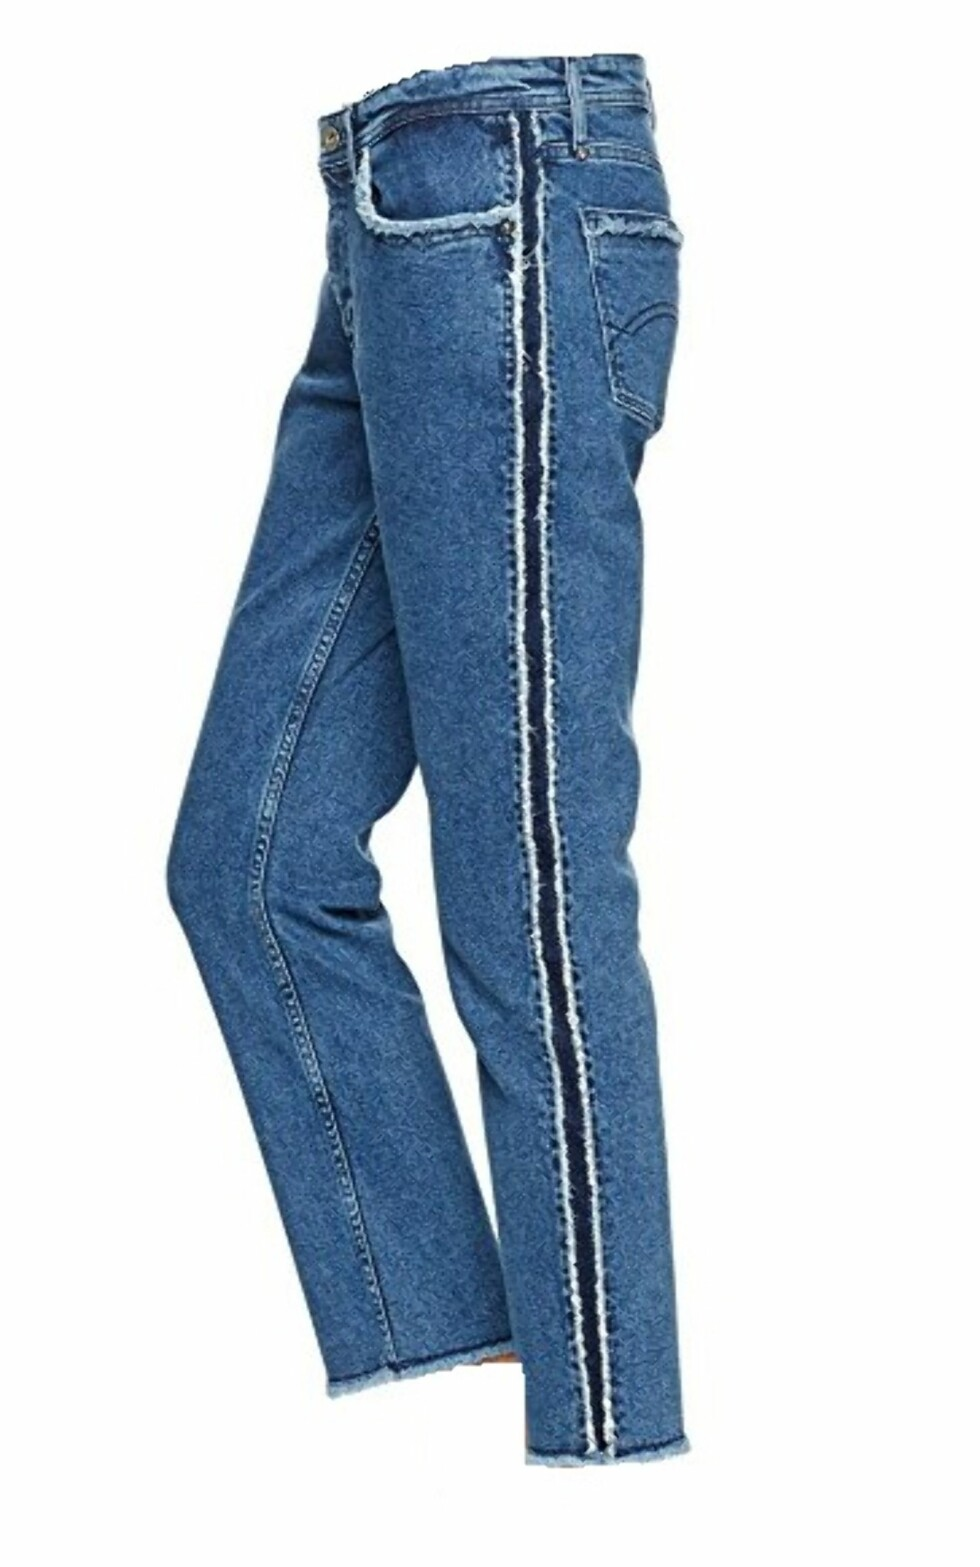 Jeans fra Hilfiger Denim via Nelly.com | kr 909 | https://my.nelly.com/link/click/25376